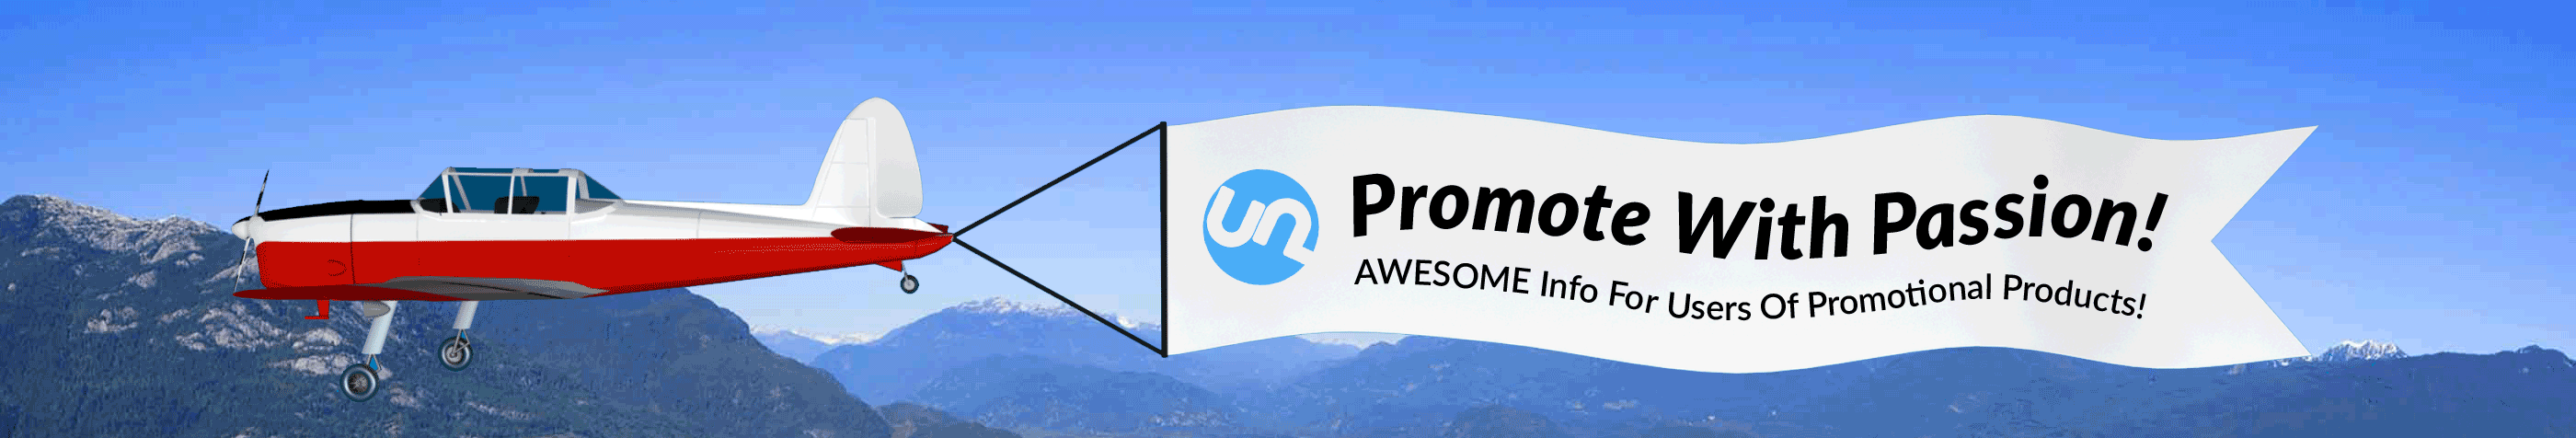 blog-header.png